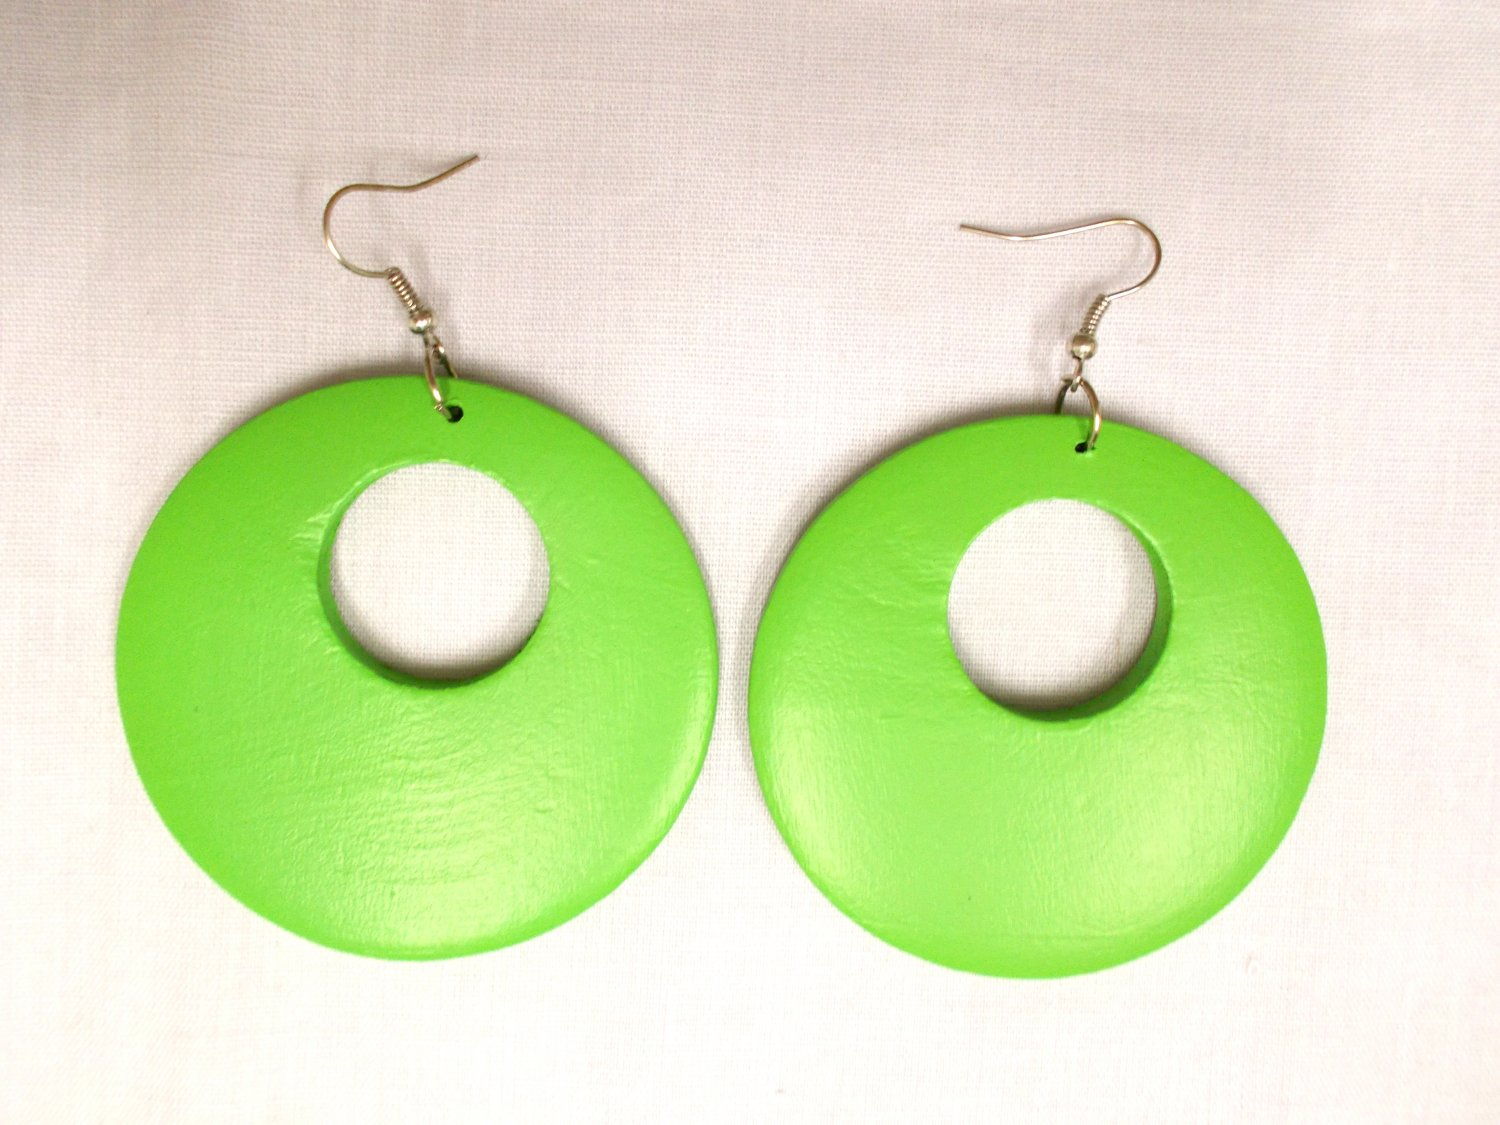 BIG SIZE LARGE APPLE LIME GREEN HAND PAINTED WOOD ROUND EXOTIC DANGLING FLAT HOOP EARRINGS